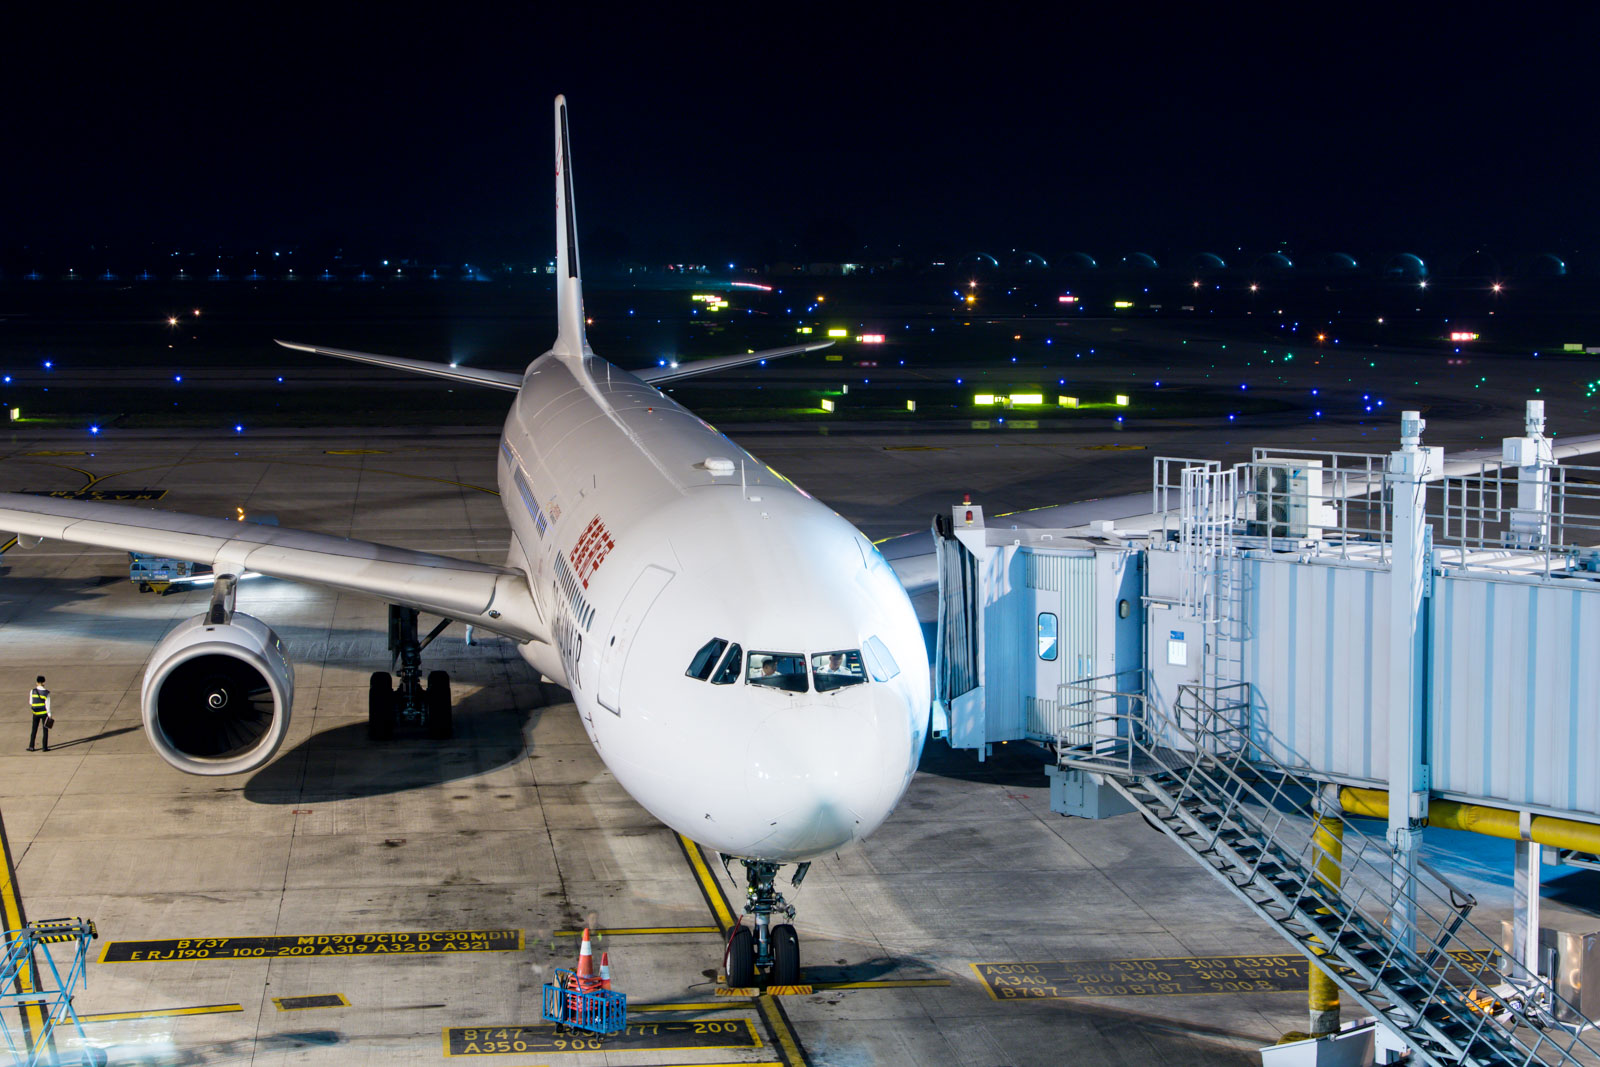 Cathay Dragon Airbus A330-300 at Hanoi Airport